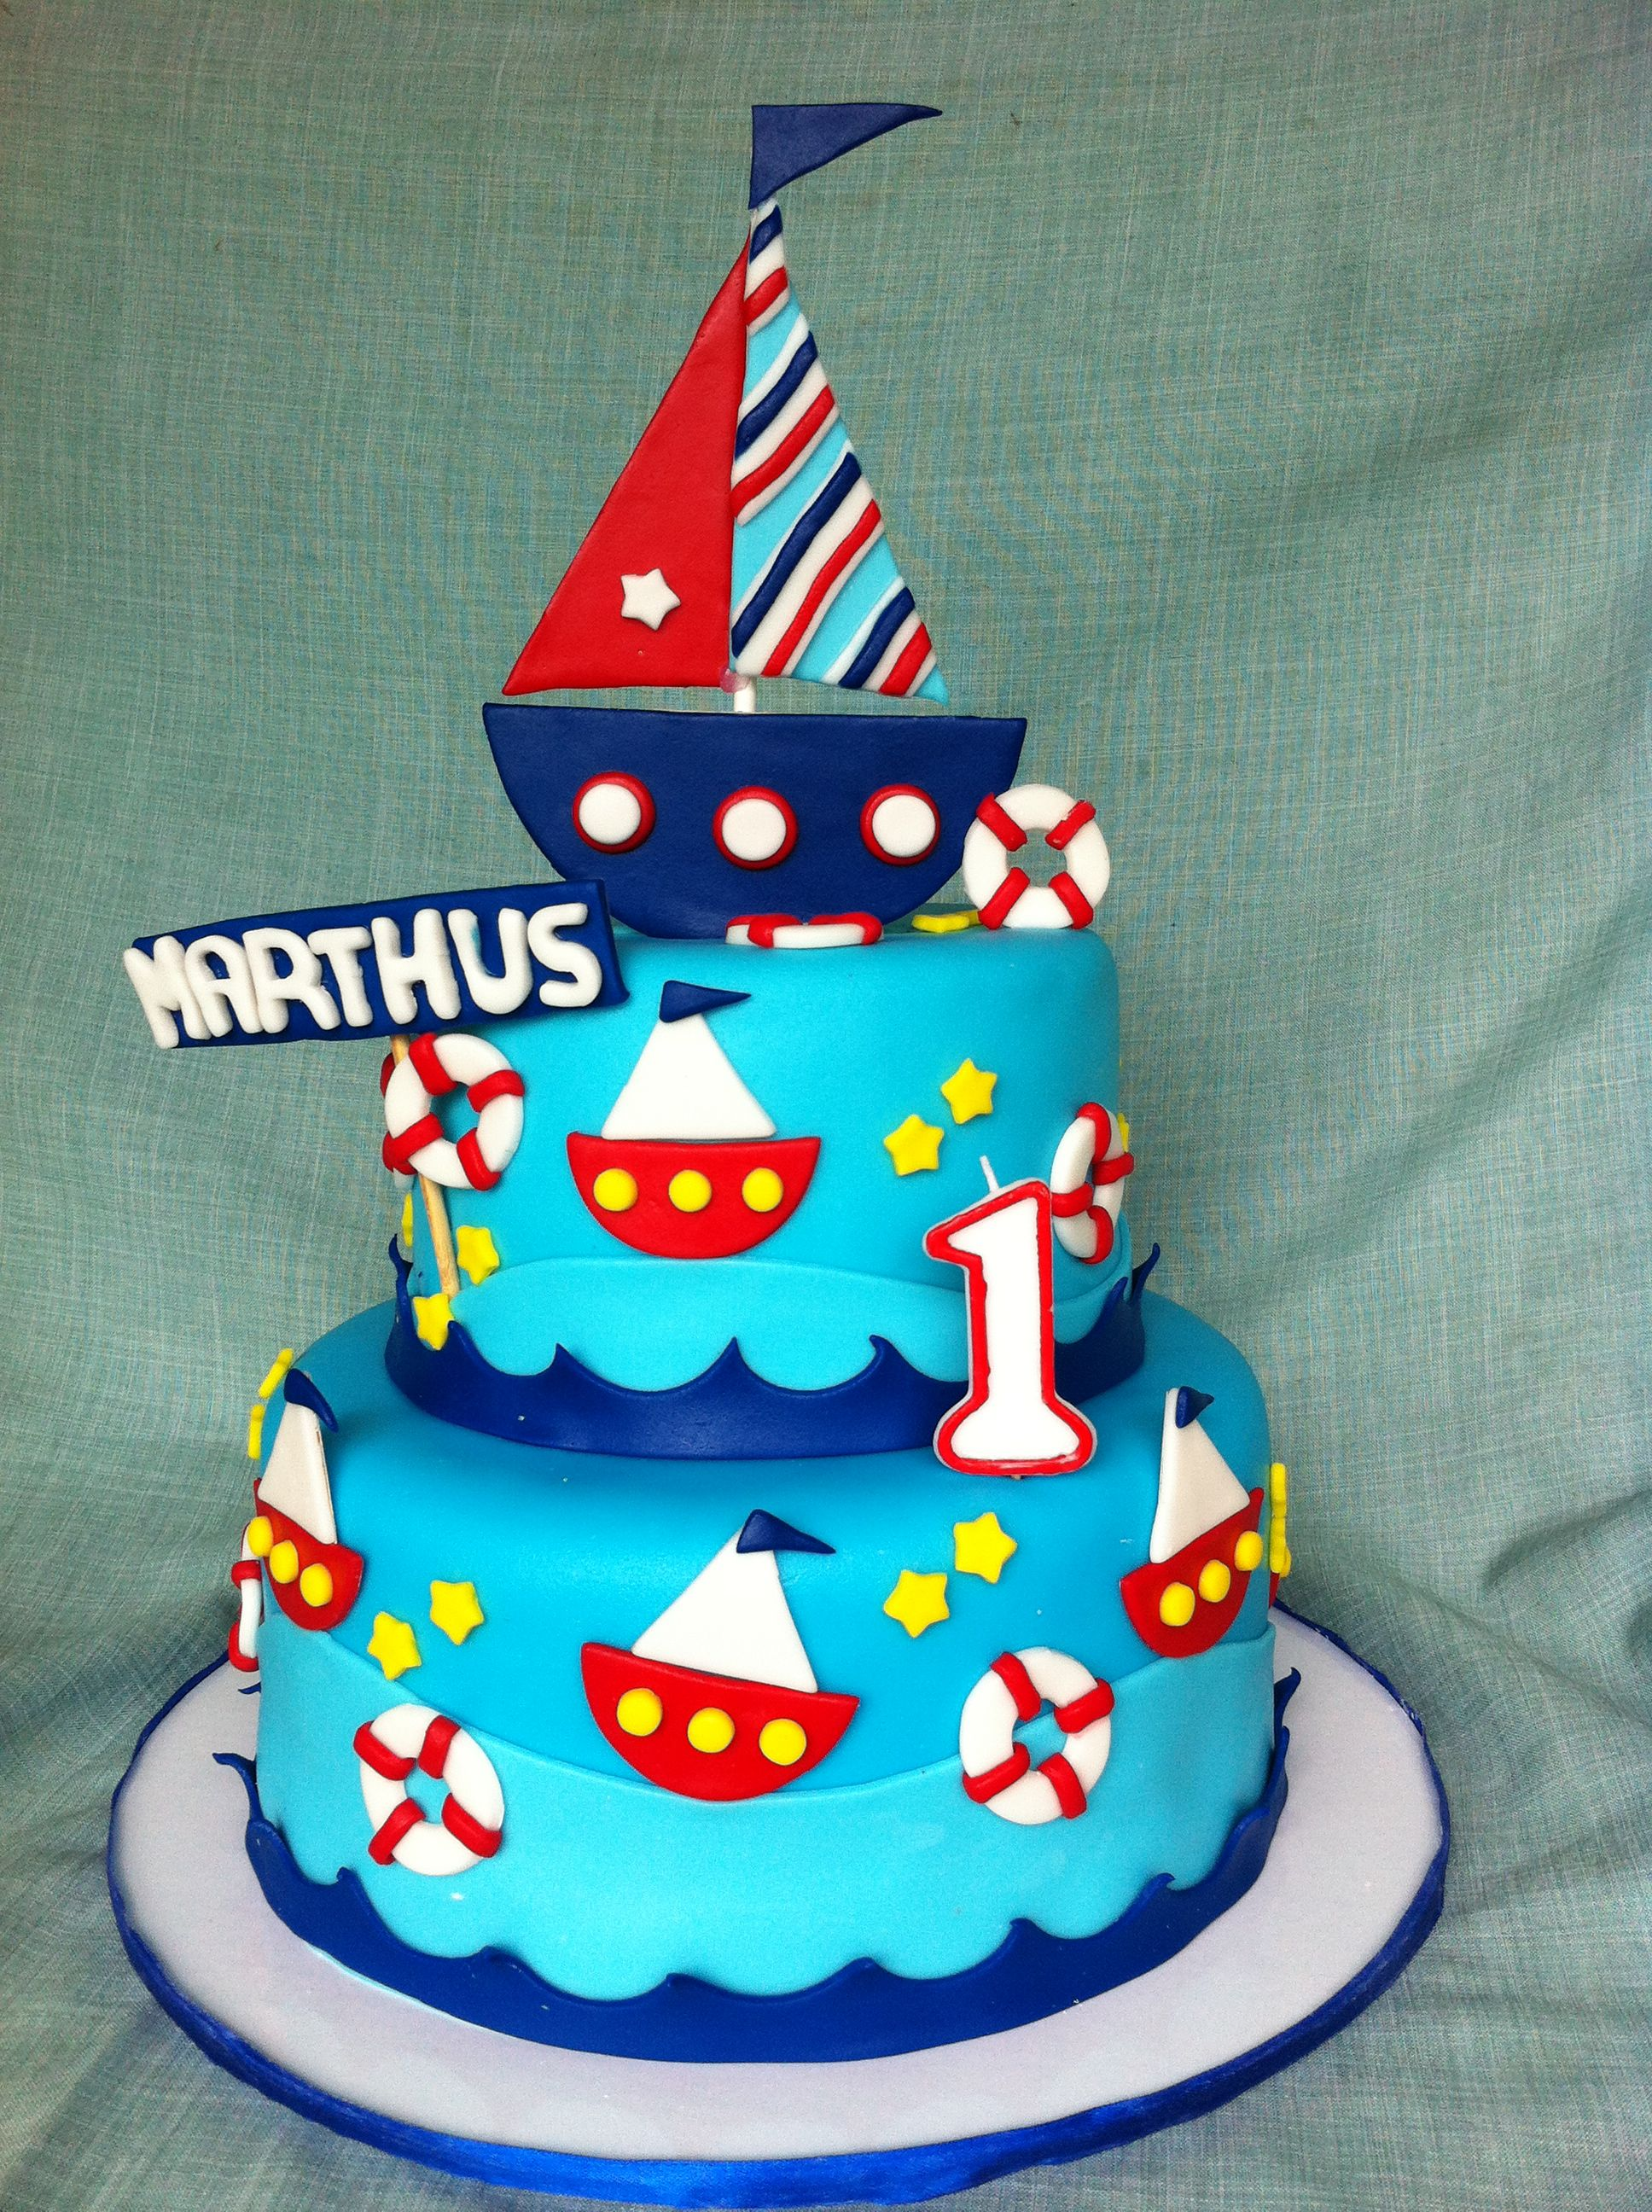 Sailor Themed Birthday Cake By Sweetmills